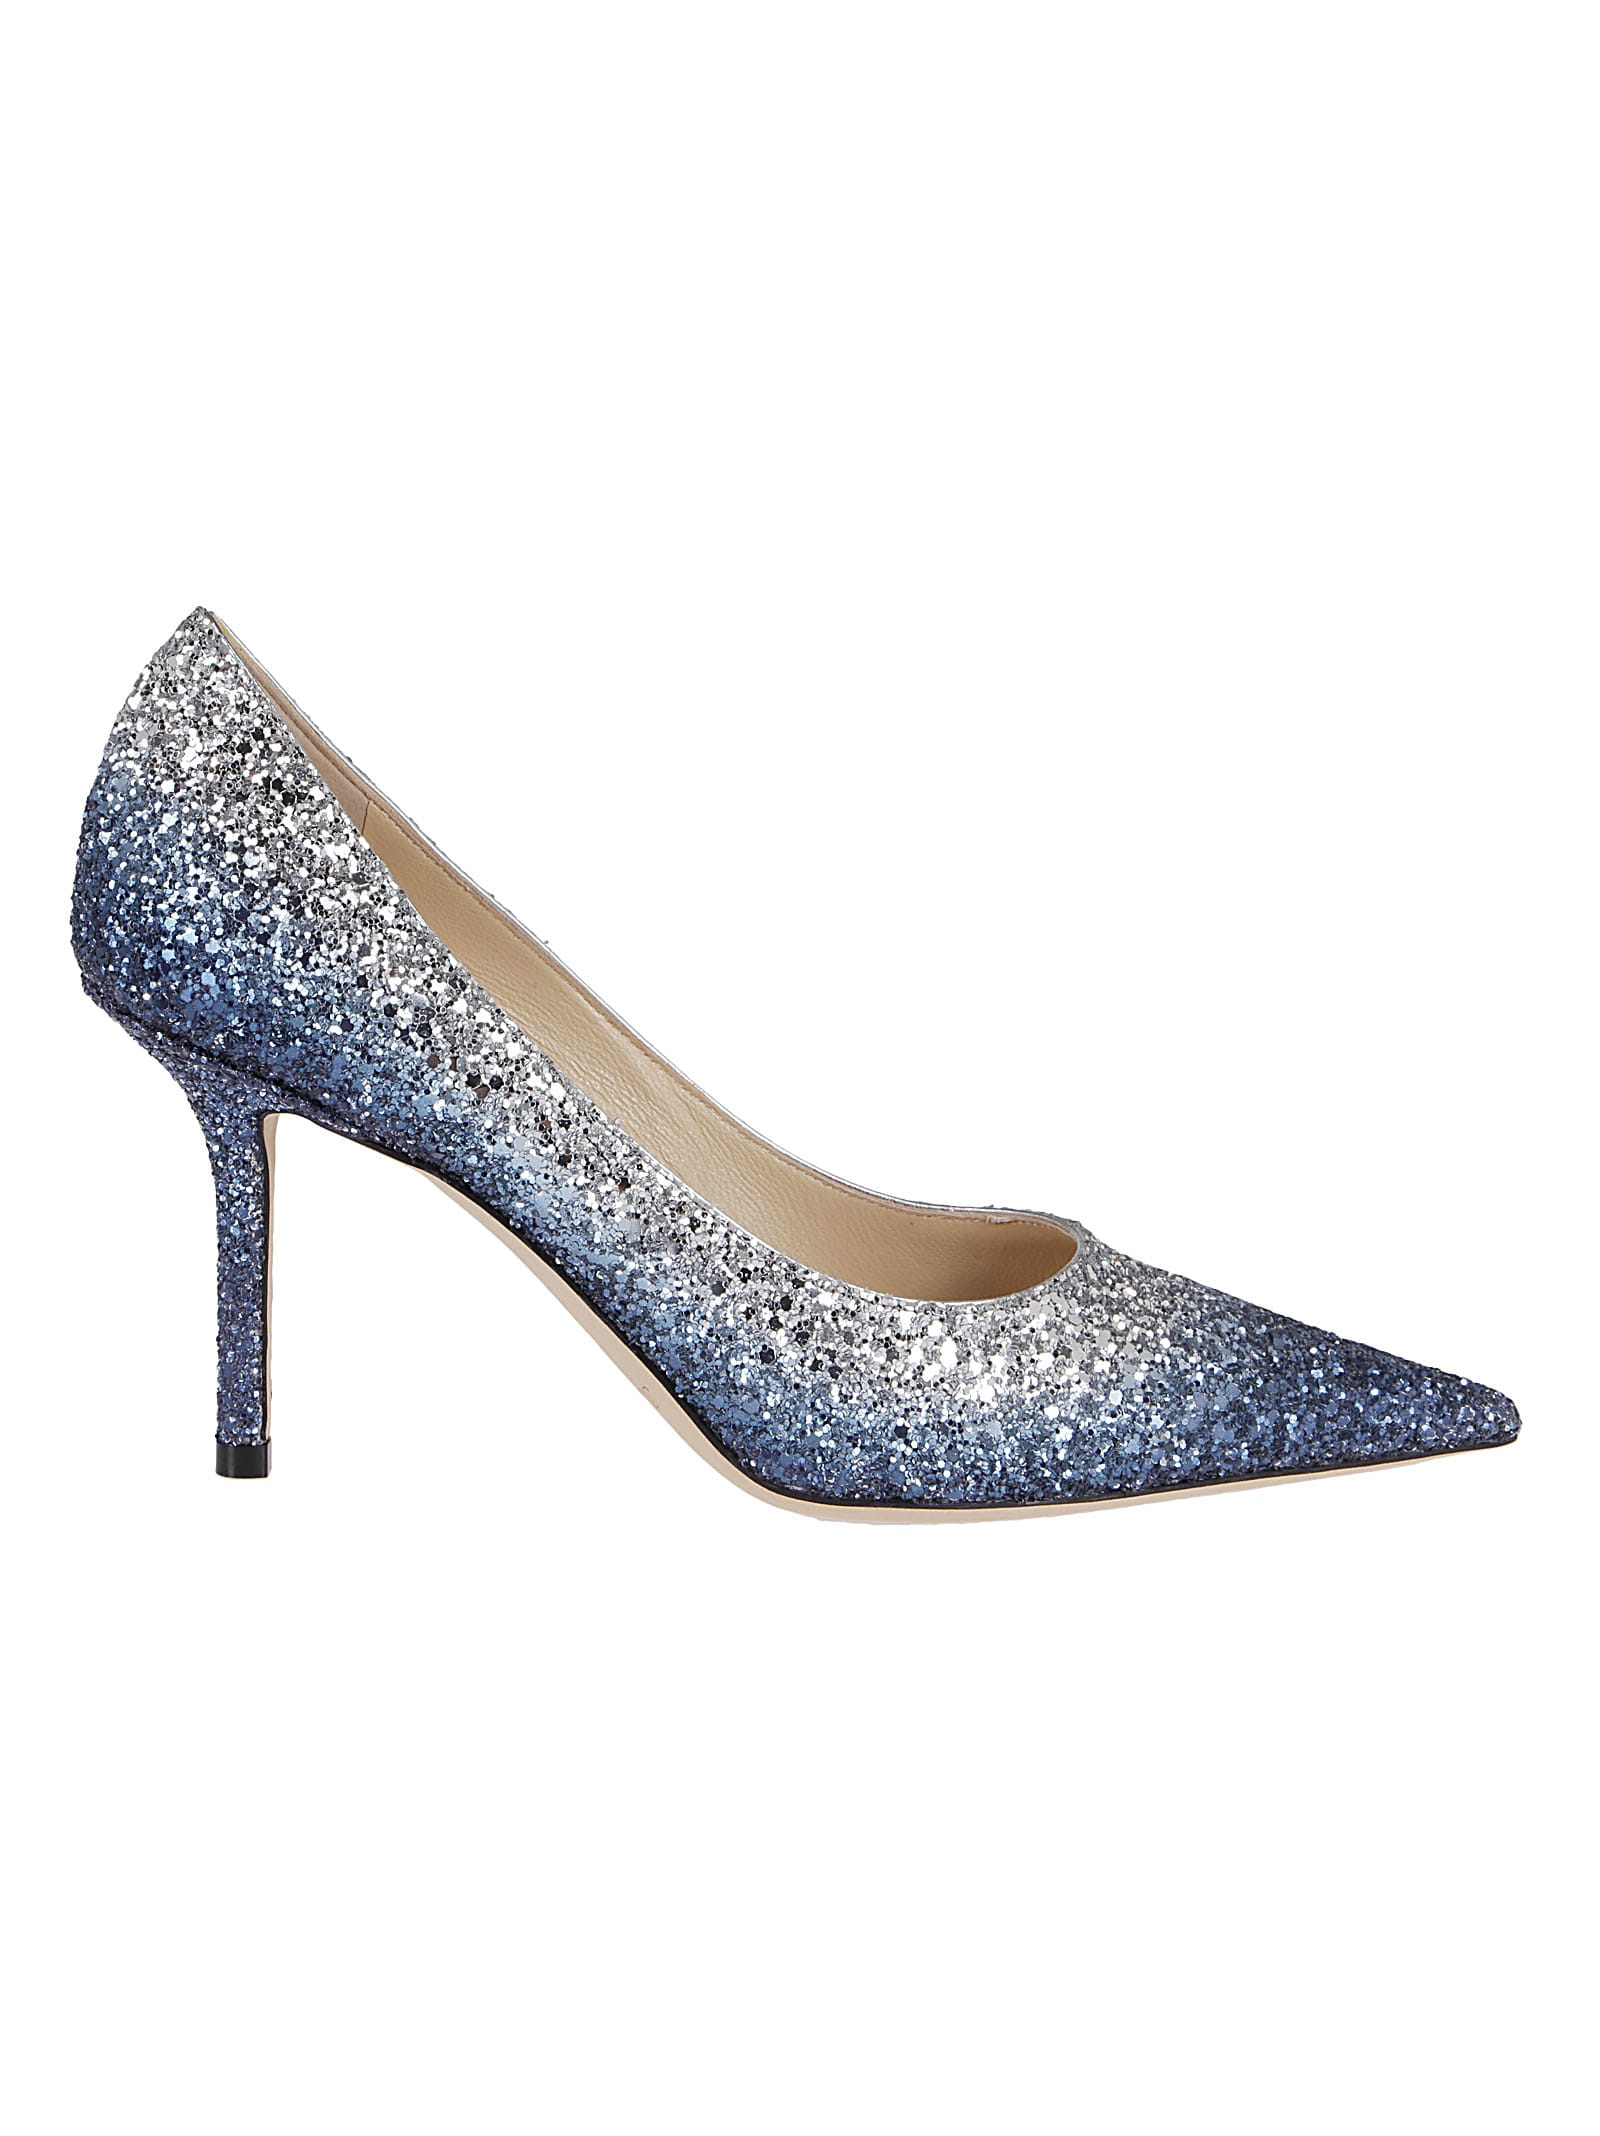 Jimmy Choo DENIM AND SILVER GLITTER LOVE 85 PUMPS